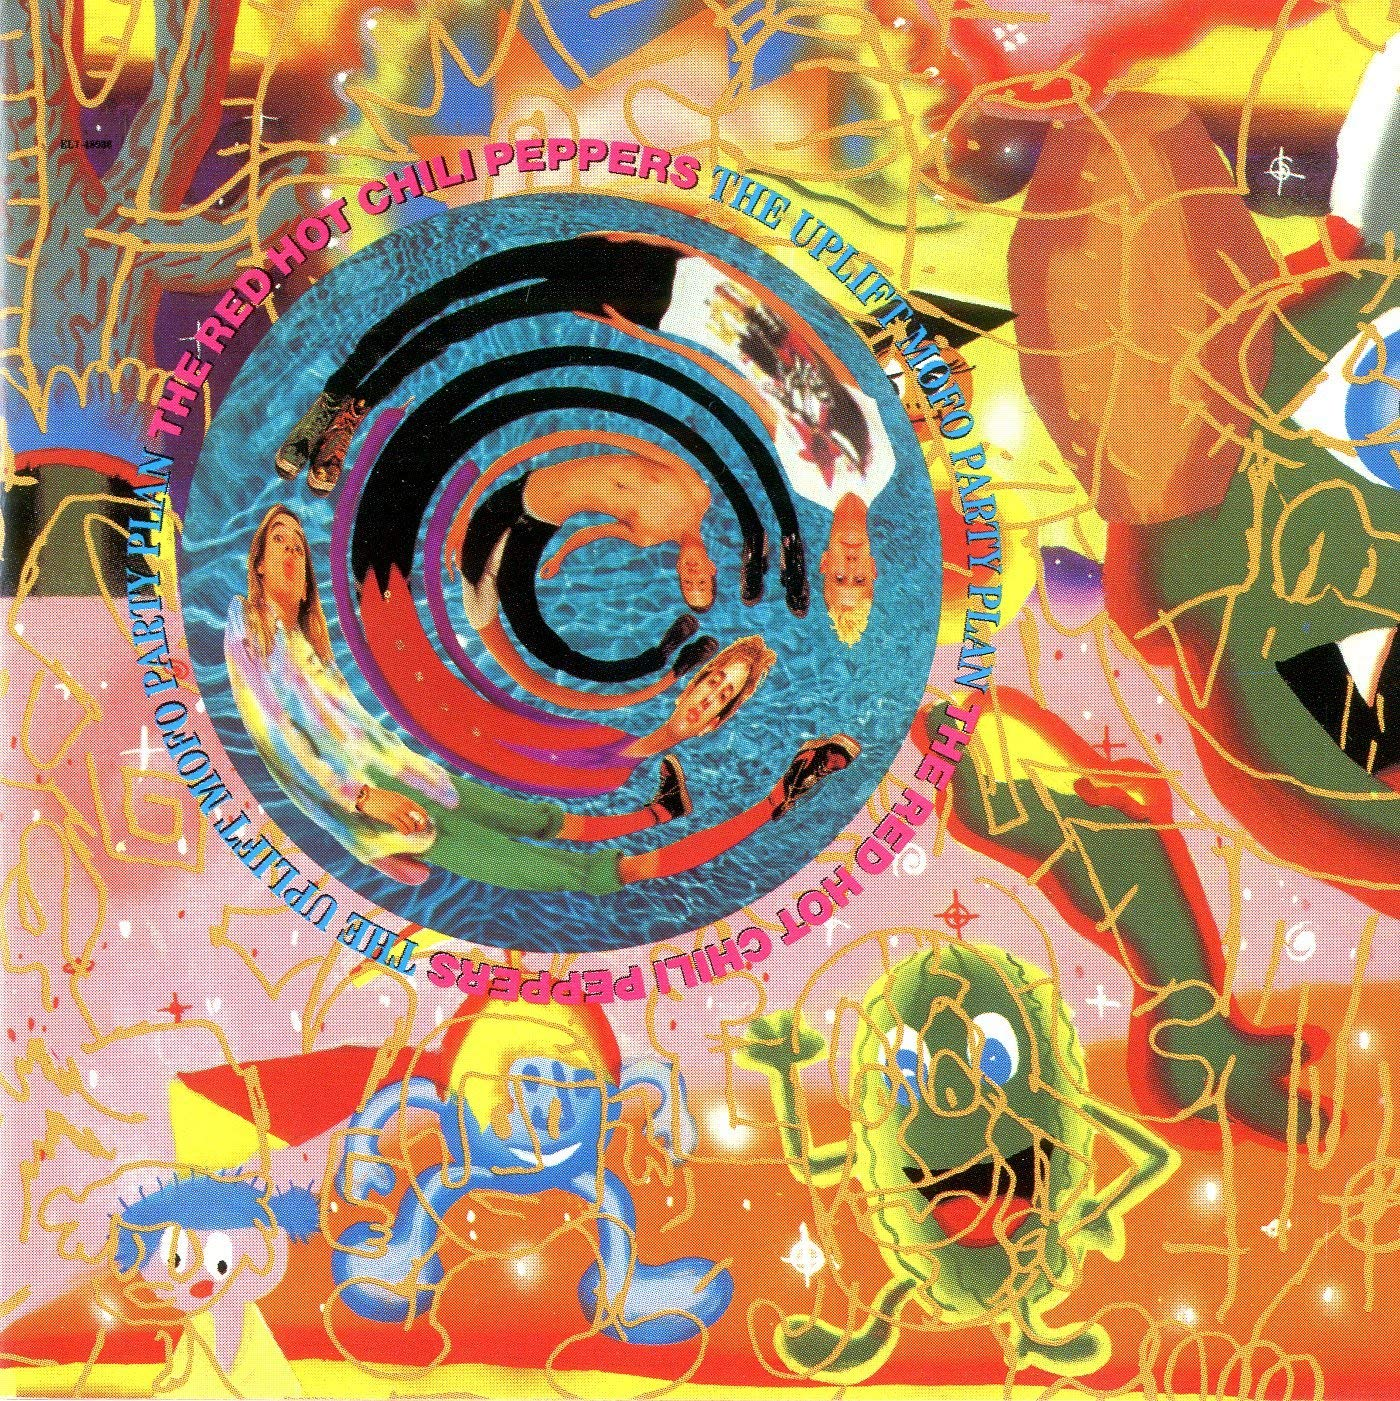 """Another ode to friends and community. The original lineup of the Red Hot Chili Peppers reunited for 'The Uplift Mofo Party Plan': guitarist Hillel Slovak rejoined the band on the prior album, and Jack Irons returned on this album. That clearly gave Anthony and Flea a new burst of energy and inspired the singer's lyrics, which sing the praises of his bandmates, as well as his friend Bob (they're """"Like two sweet peas in an even sweeter pod!"""")"""